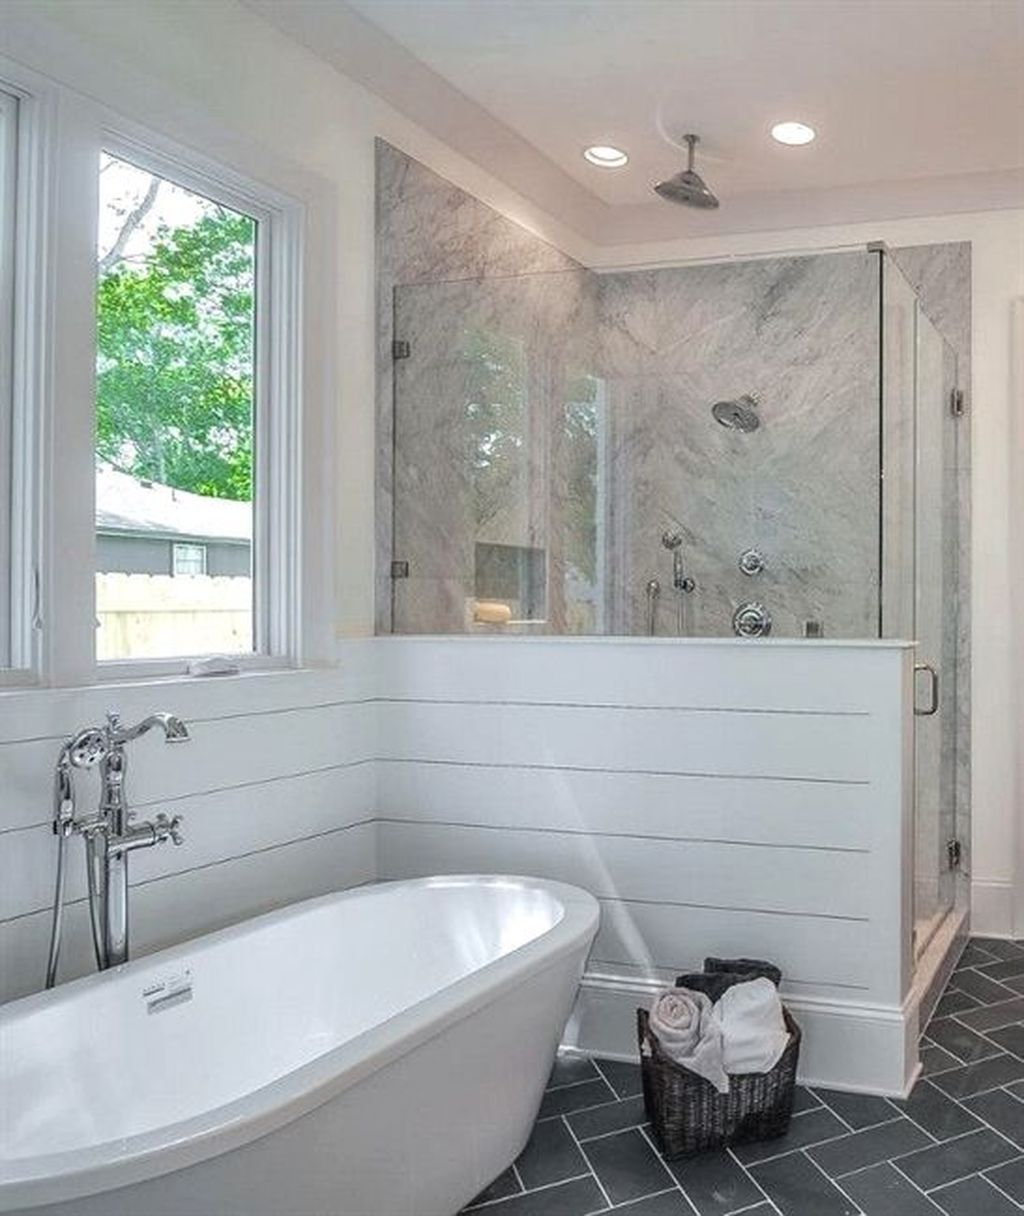 46 Beautiful Master Bathroom Remodel Design Ideas | Bathroom